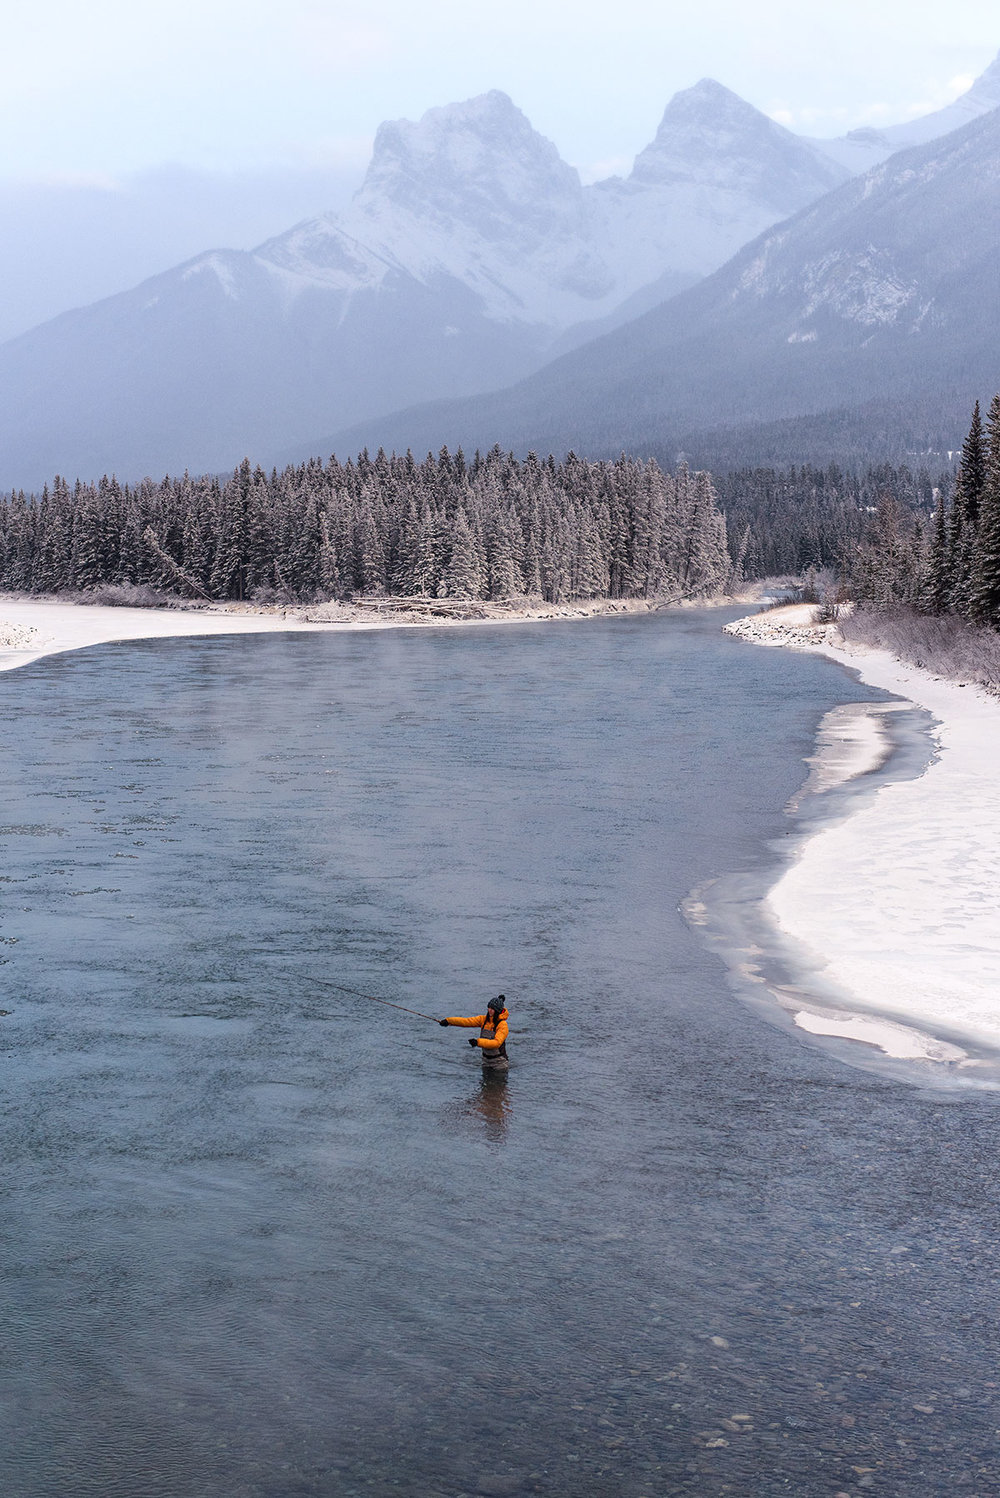 austin-trigg-patagonia-banff-alberta-winter-bow-river-anmore-canada-mountains-fly-fishing-sunset.jpg